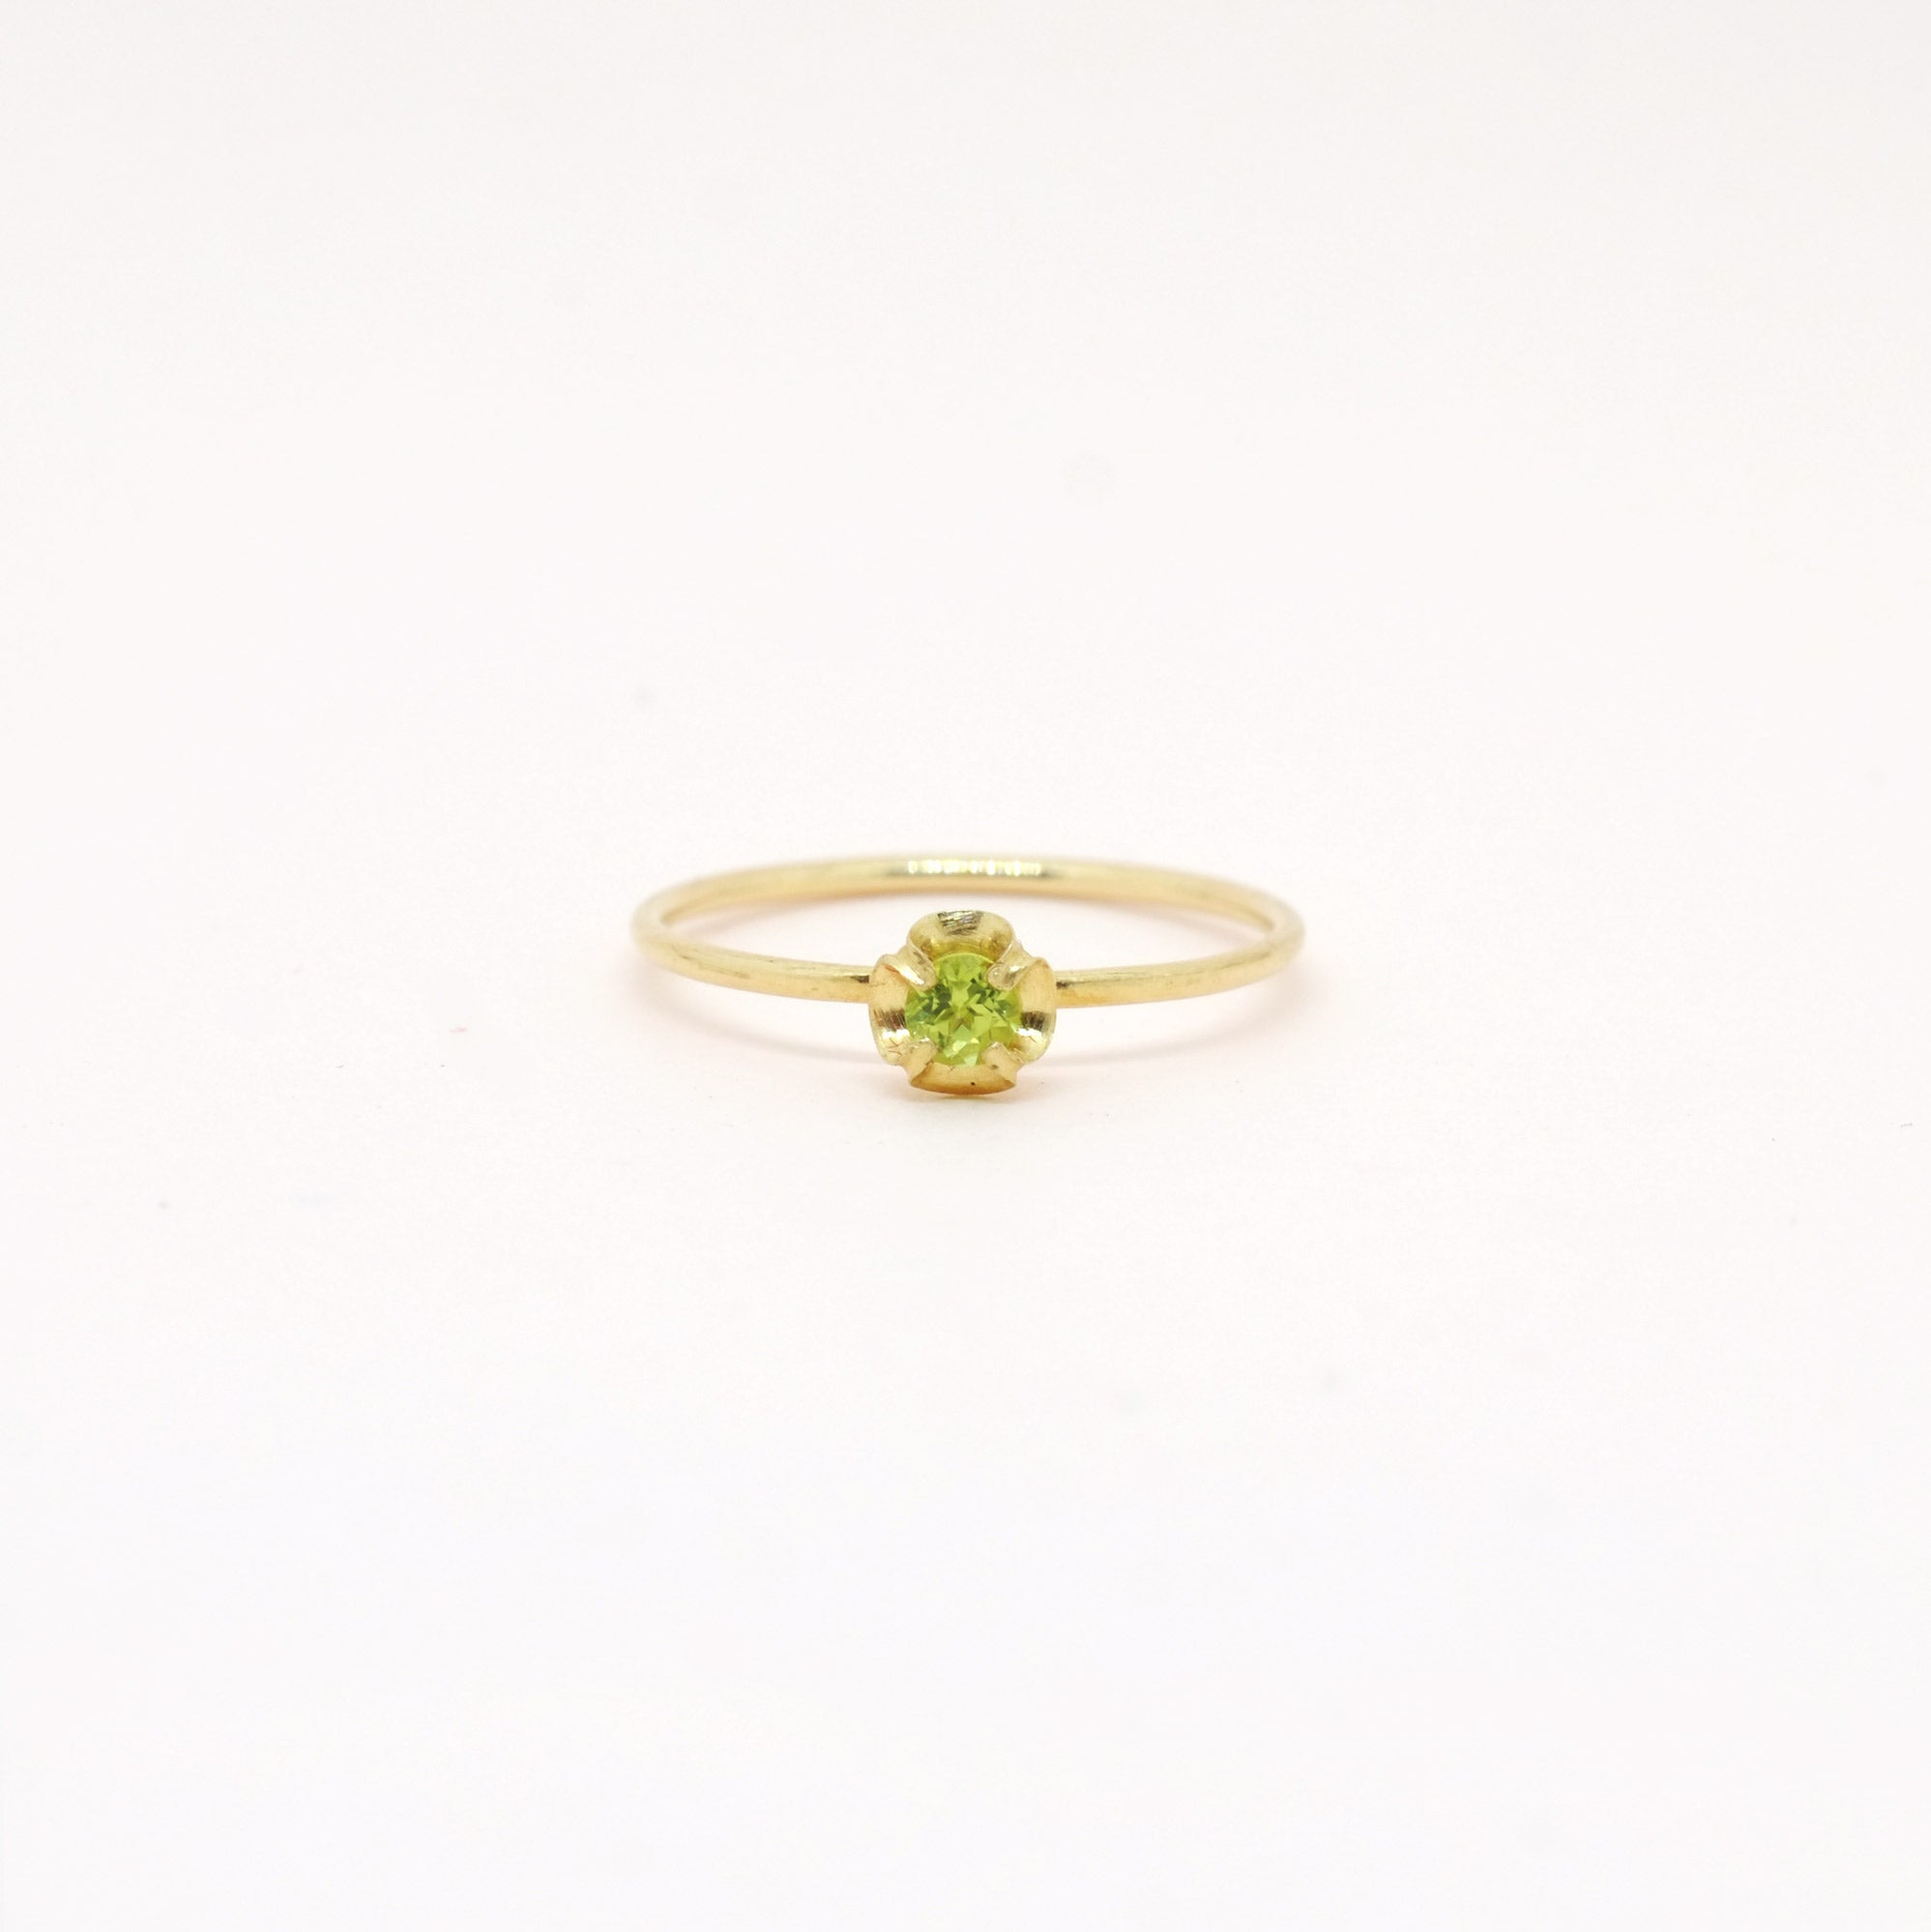 ring peridot estate gift fullxfull vintage band birthstone anniversary listing and august il opal yellow engagement unique gold jewelry rings